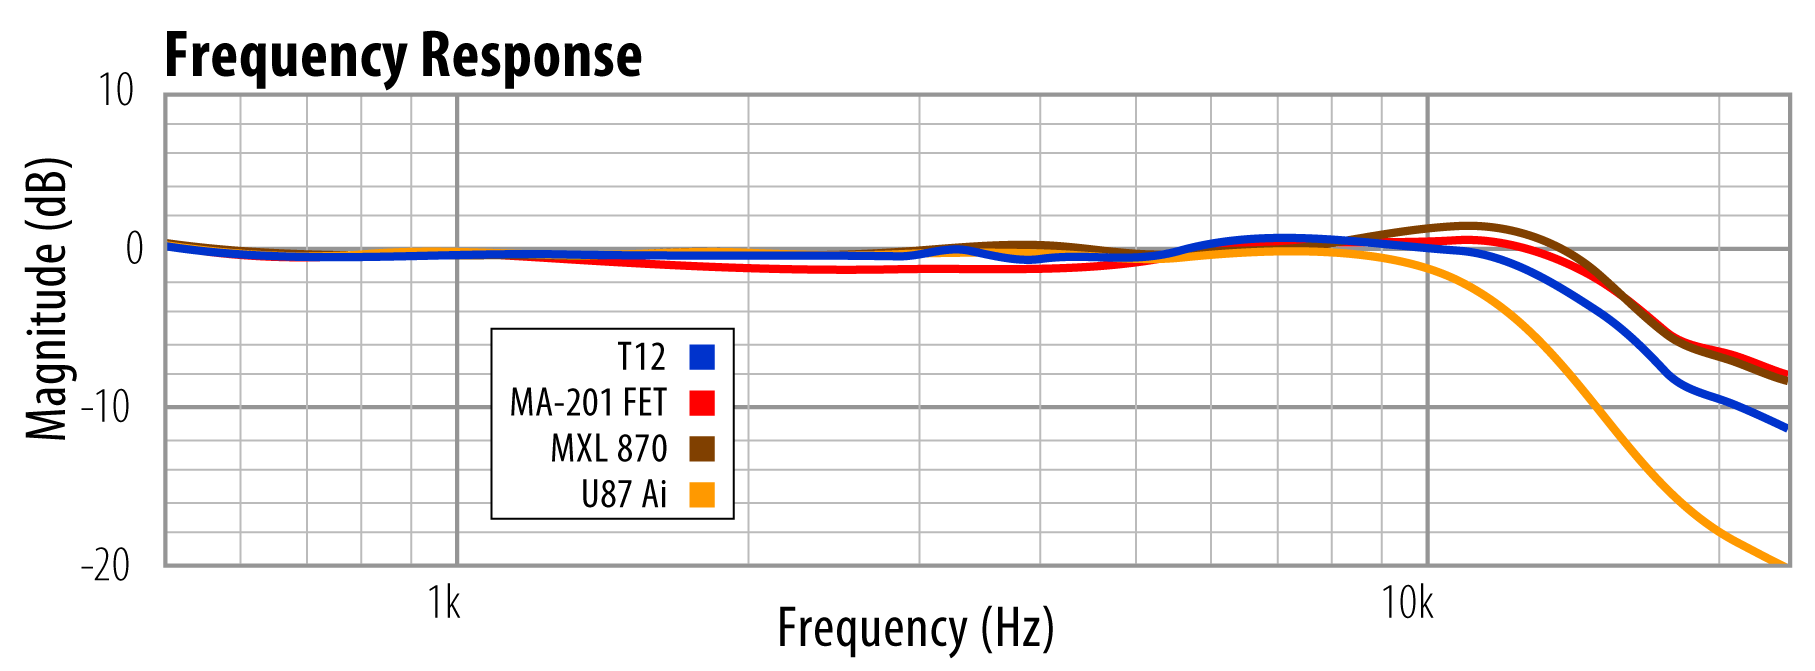 hight resolution of t12 frequency response comparison